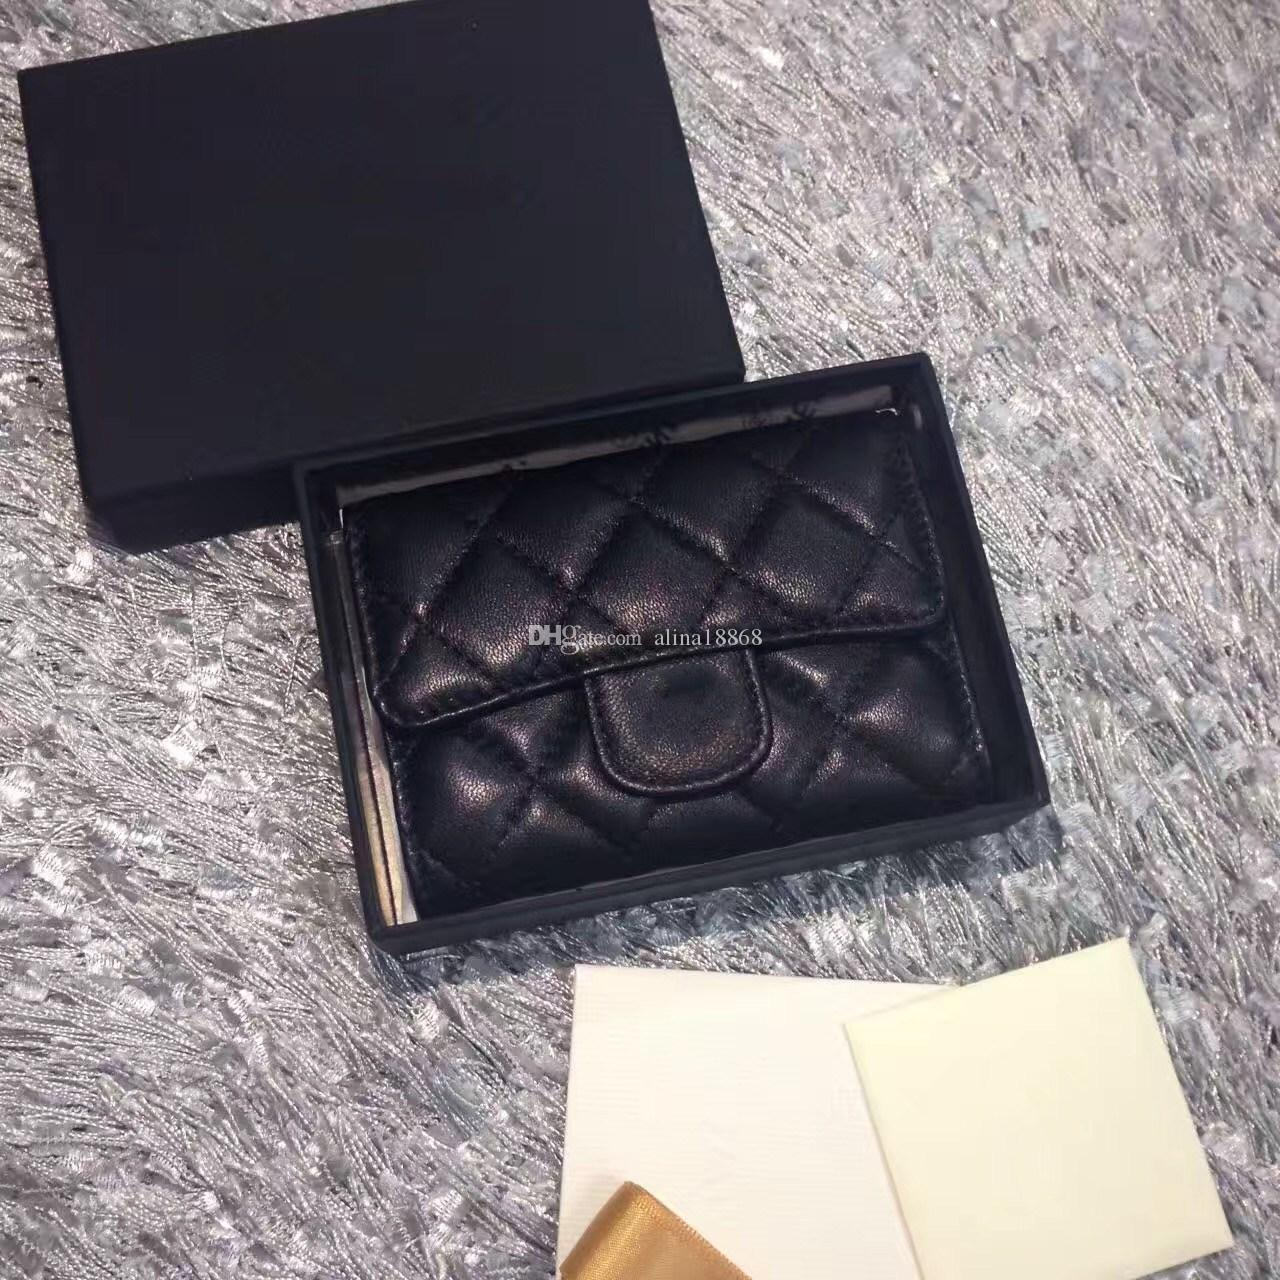 2017 Women's Fashion Card Holders Genuine Leather Lambskin Quilted Flap Mini Wallets Female Purses Card Holder Coin Pouch wiht box